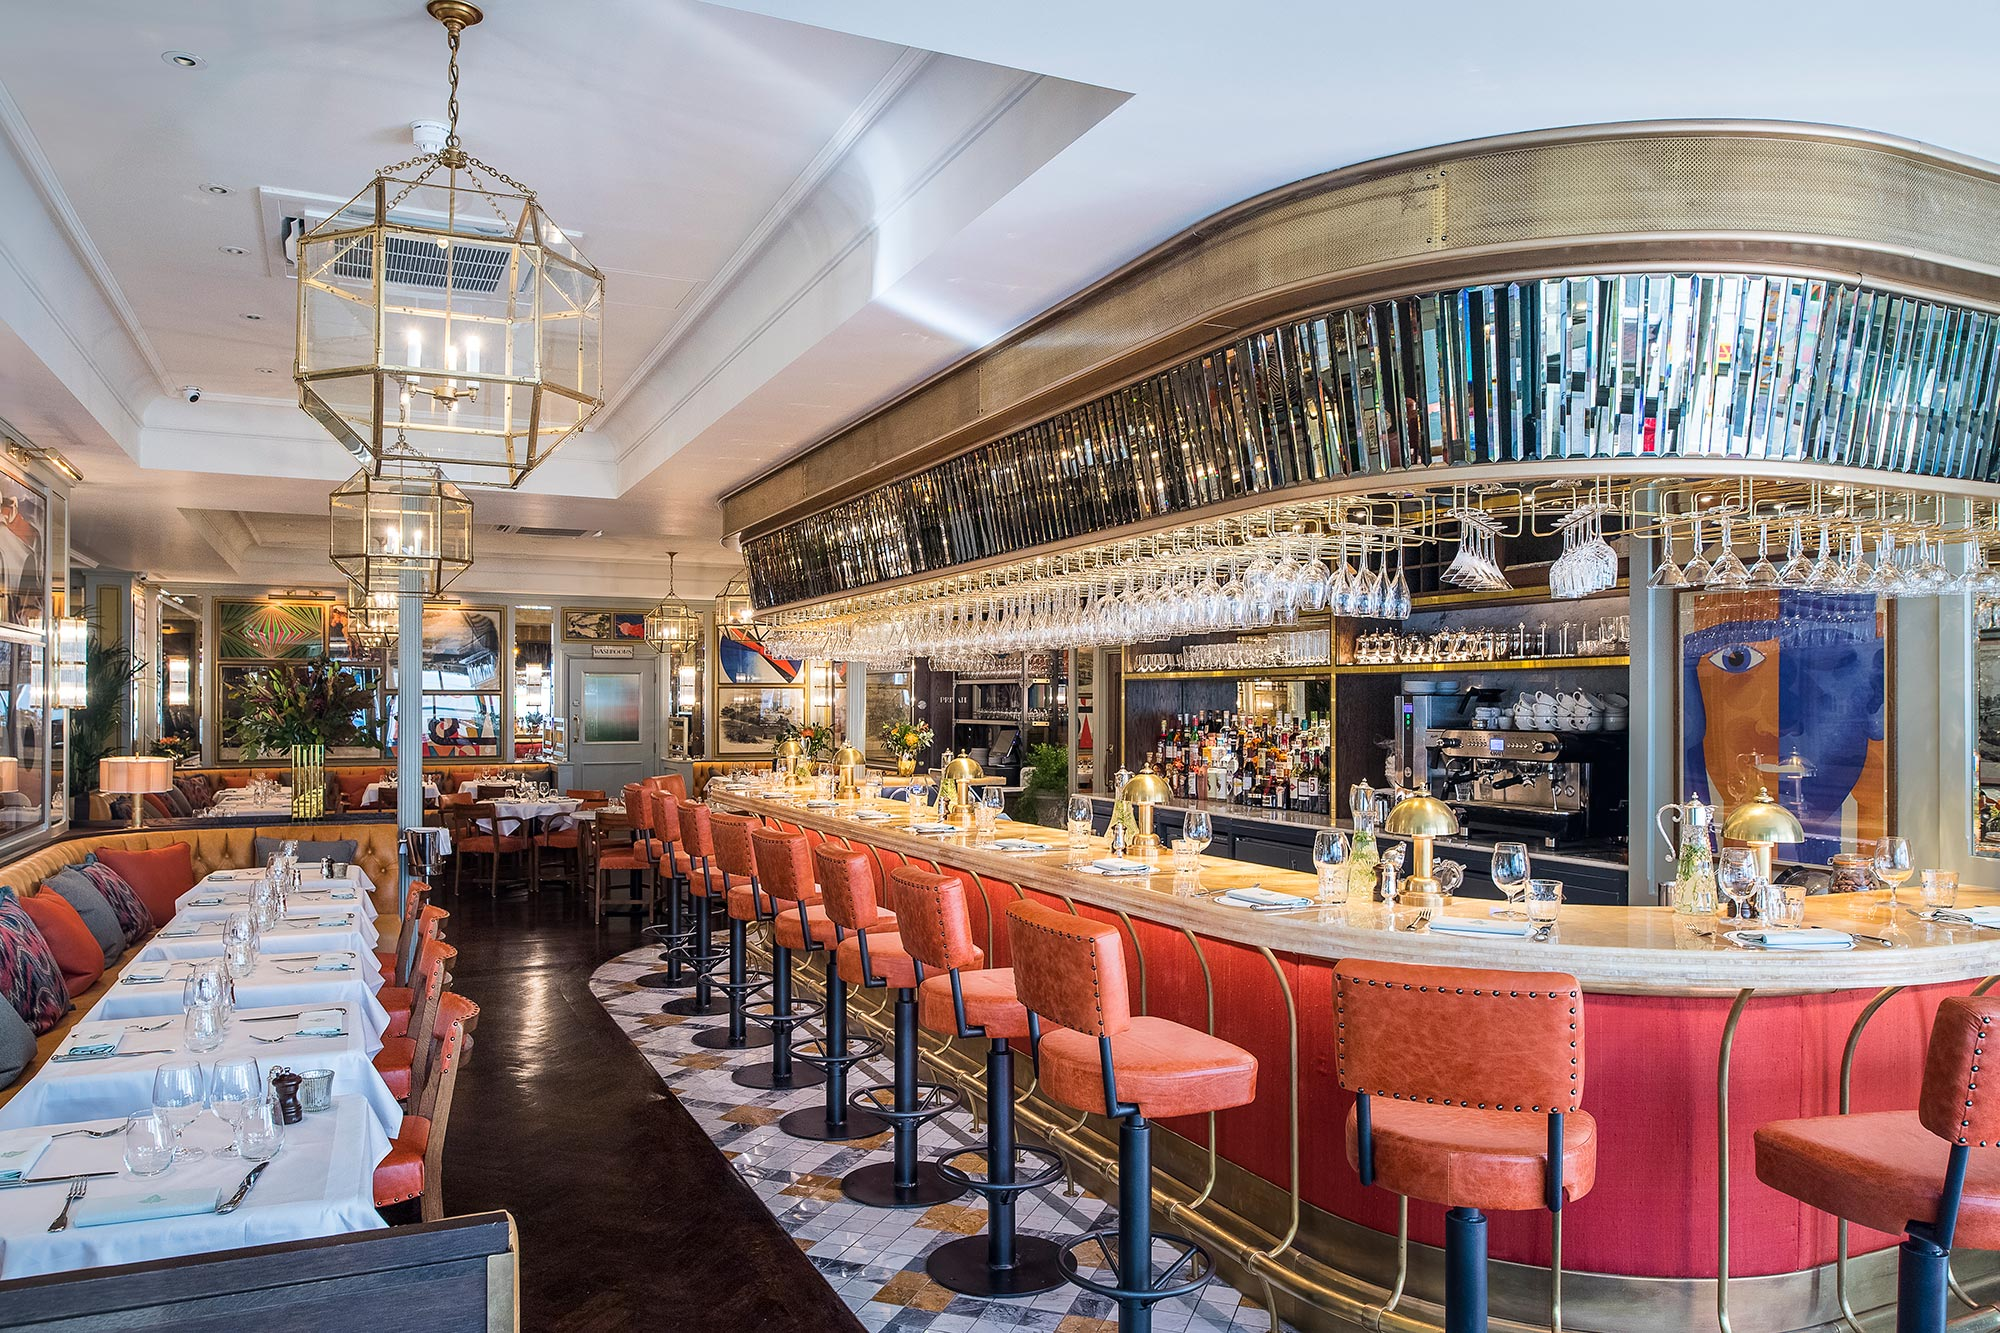 Eating out in Tunbridge Wells at The Ivy Royal Tunbridge Wells - The Ivy Royal Tunbridge Wells